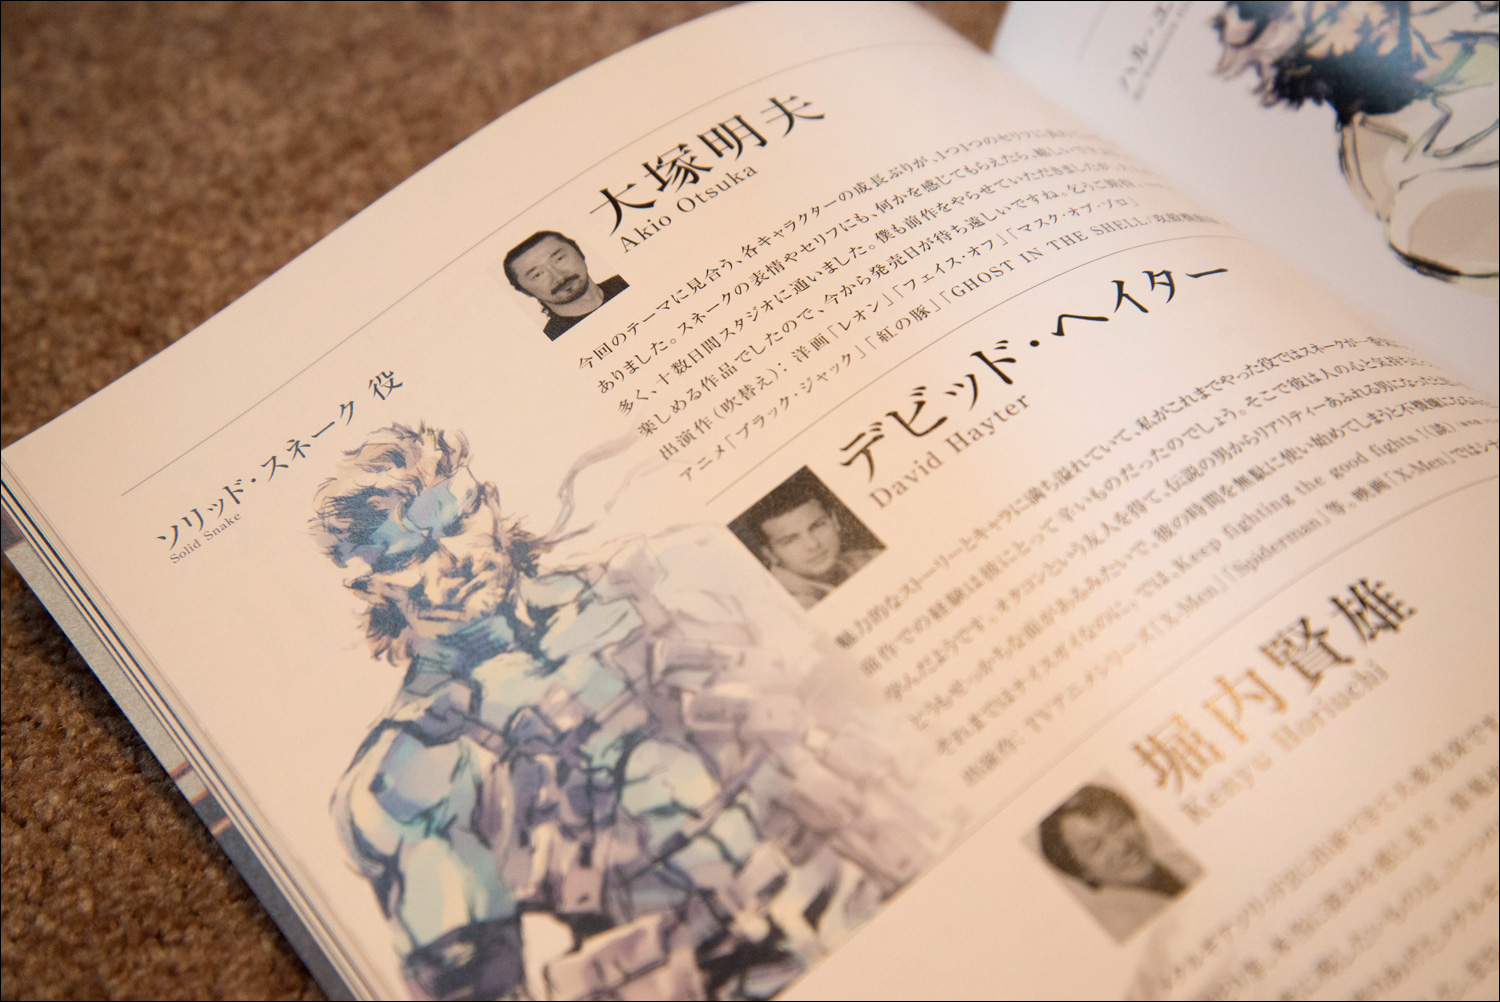 Metal-Gear-Solid-2-Sons-of-Liberty-Premium-Package-Book-Voice-Actors